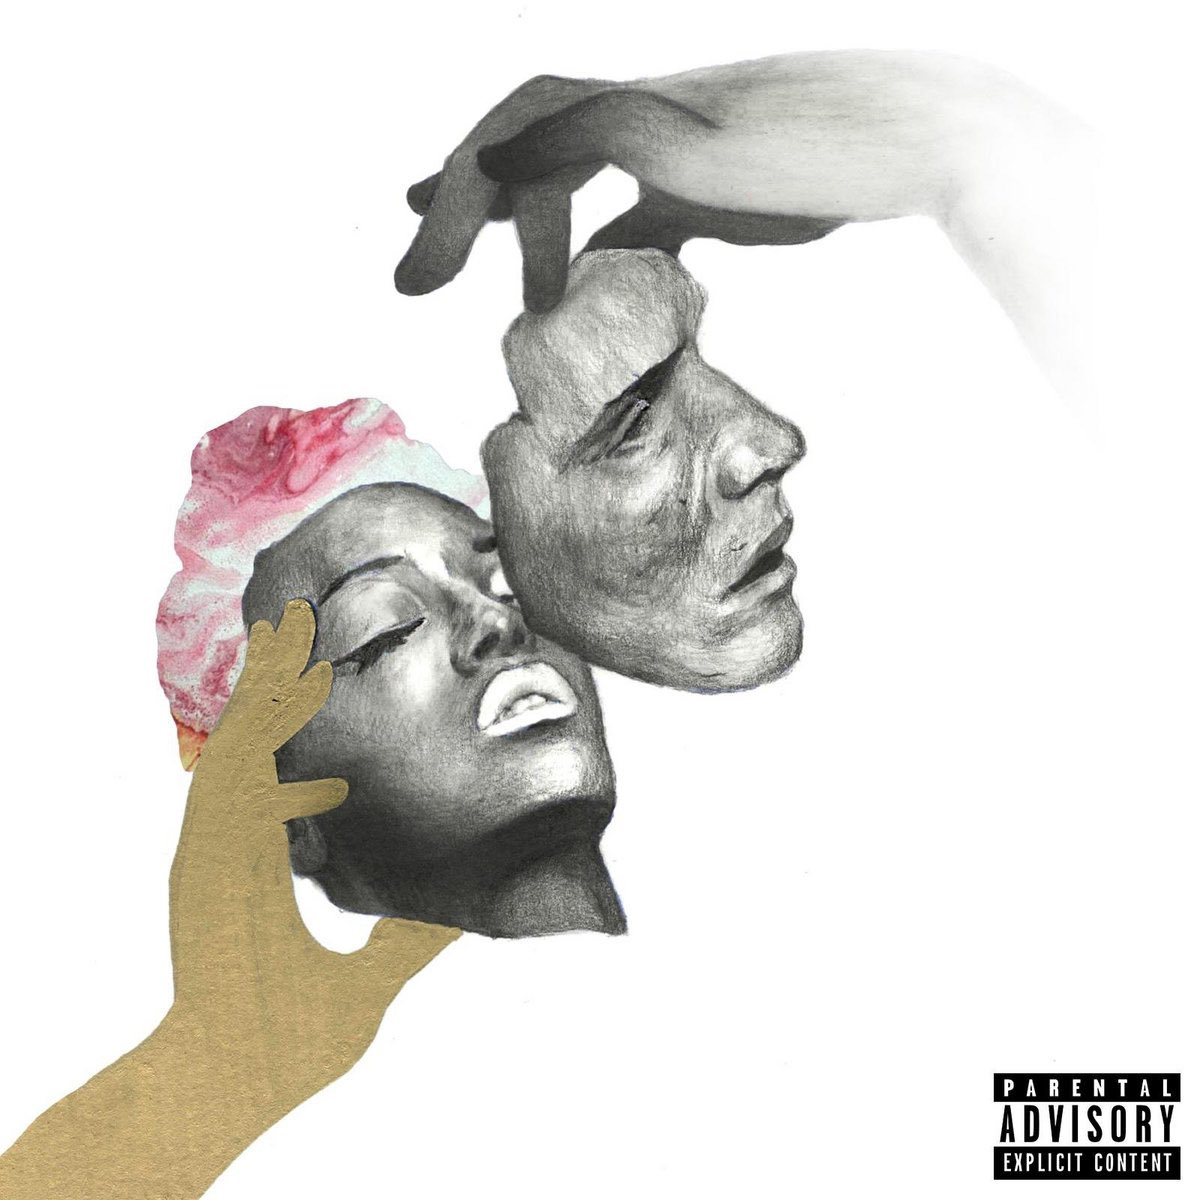 Man. #Blackheart this album changed my life.  Brought in so manny people full of love around me. Thank you @DawnRichard 💜